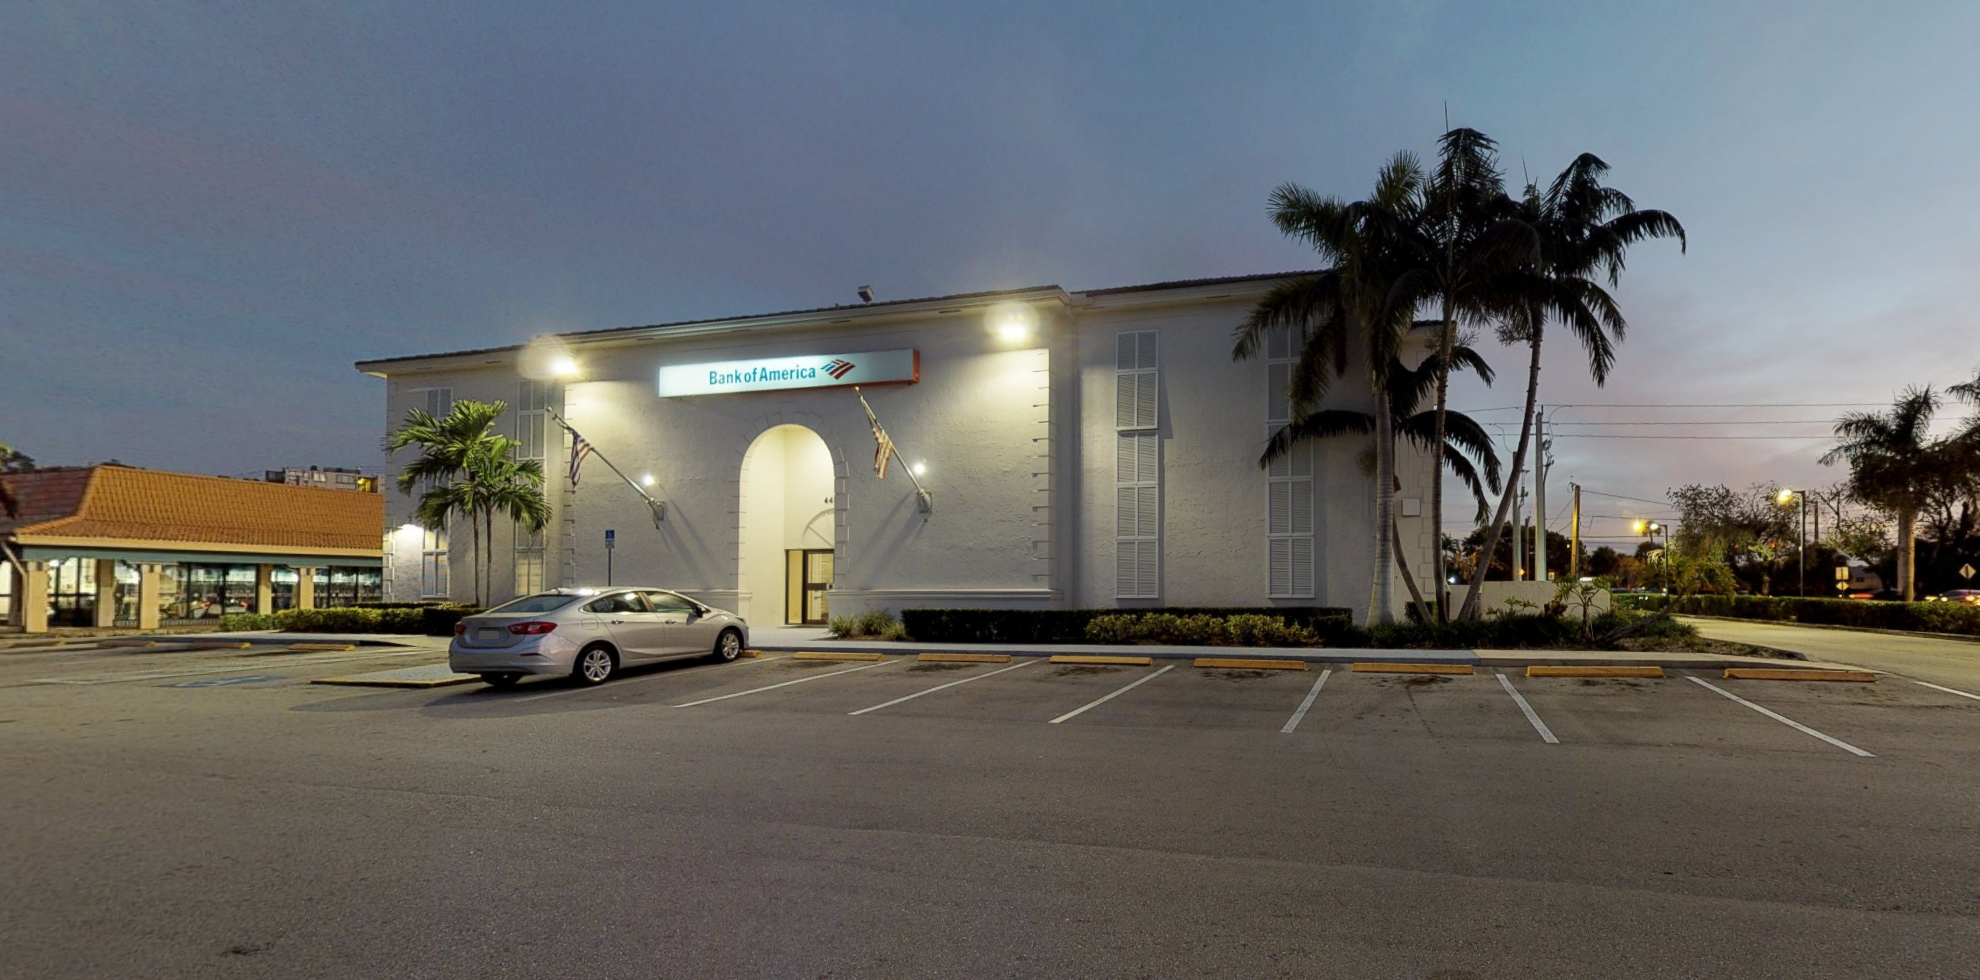 Bank of America financial center with drive-thru ATM and teller | 4400 Inverrary Blvd, Lauderhill, FL 33319